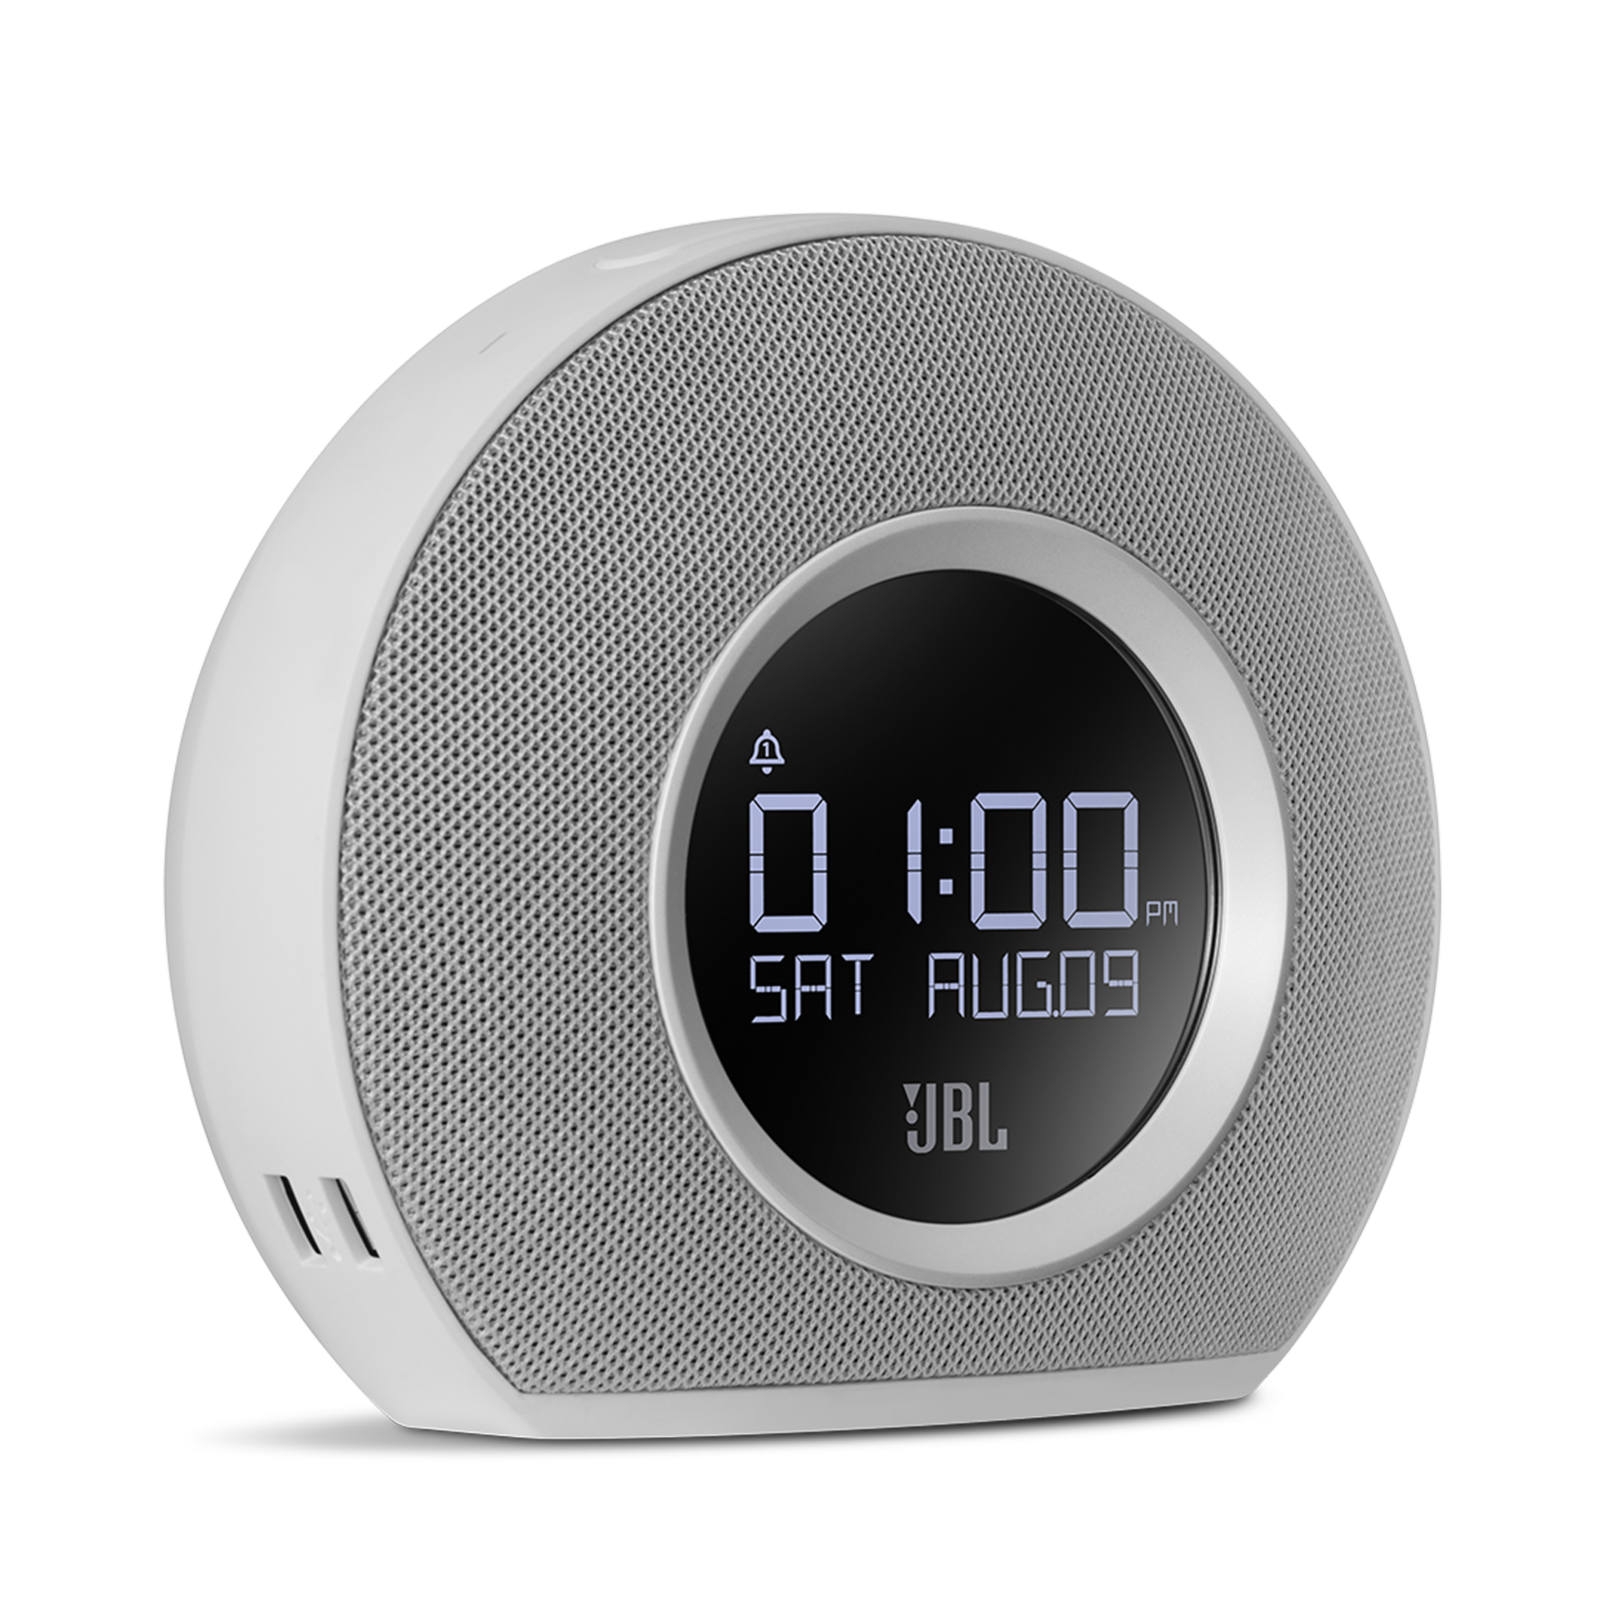 JBL Horizon - White - Bluetooth clock radio with USB charging and ambient light - Detailshot 1